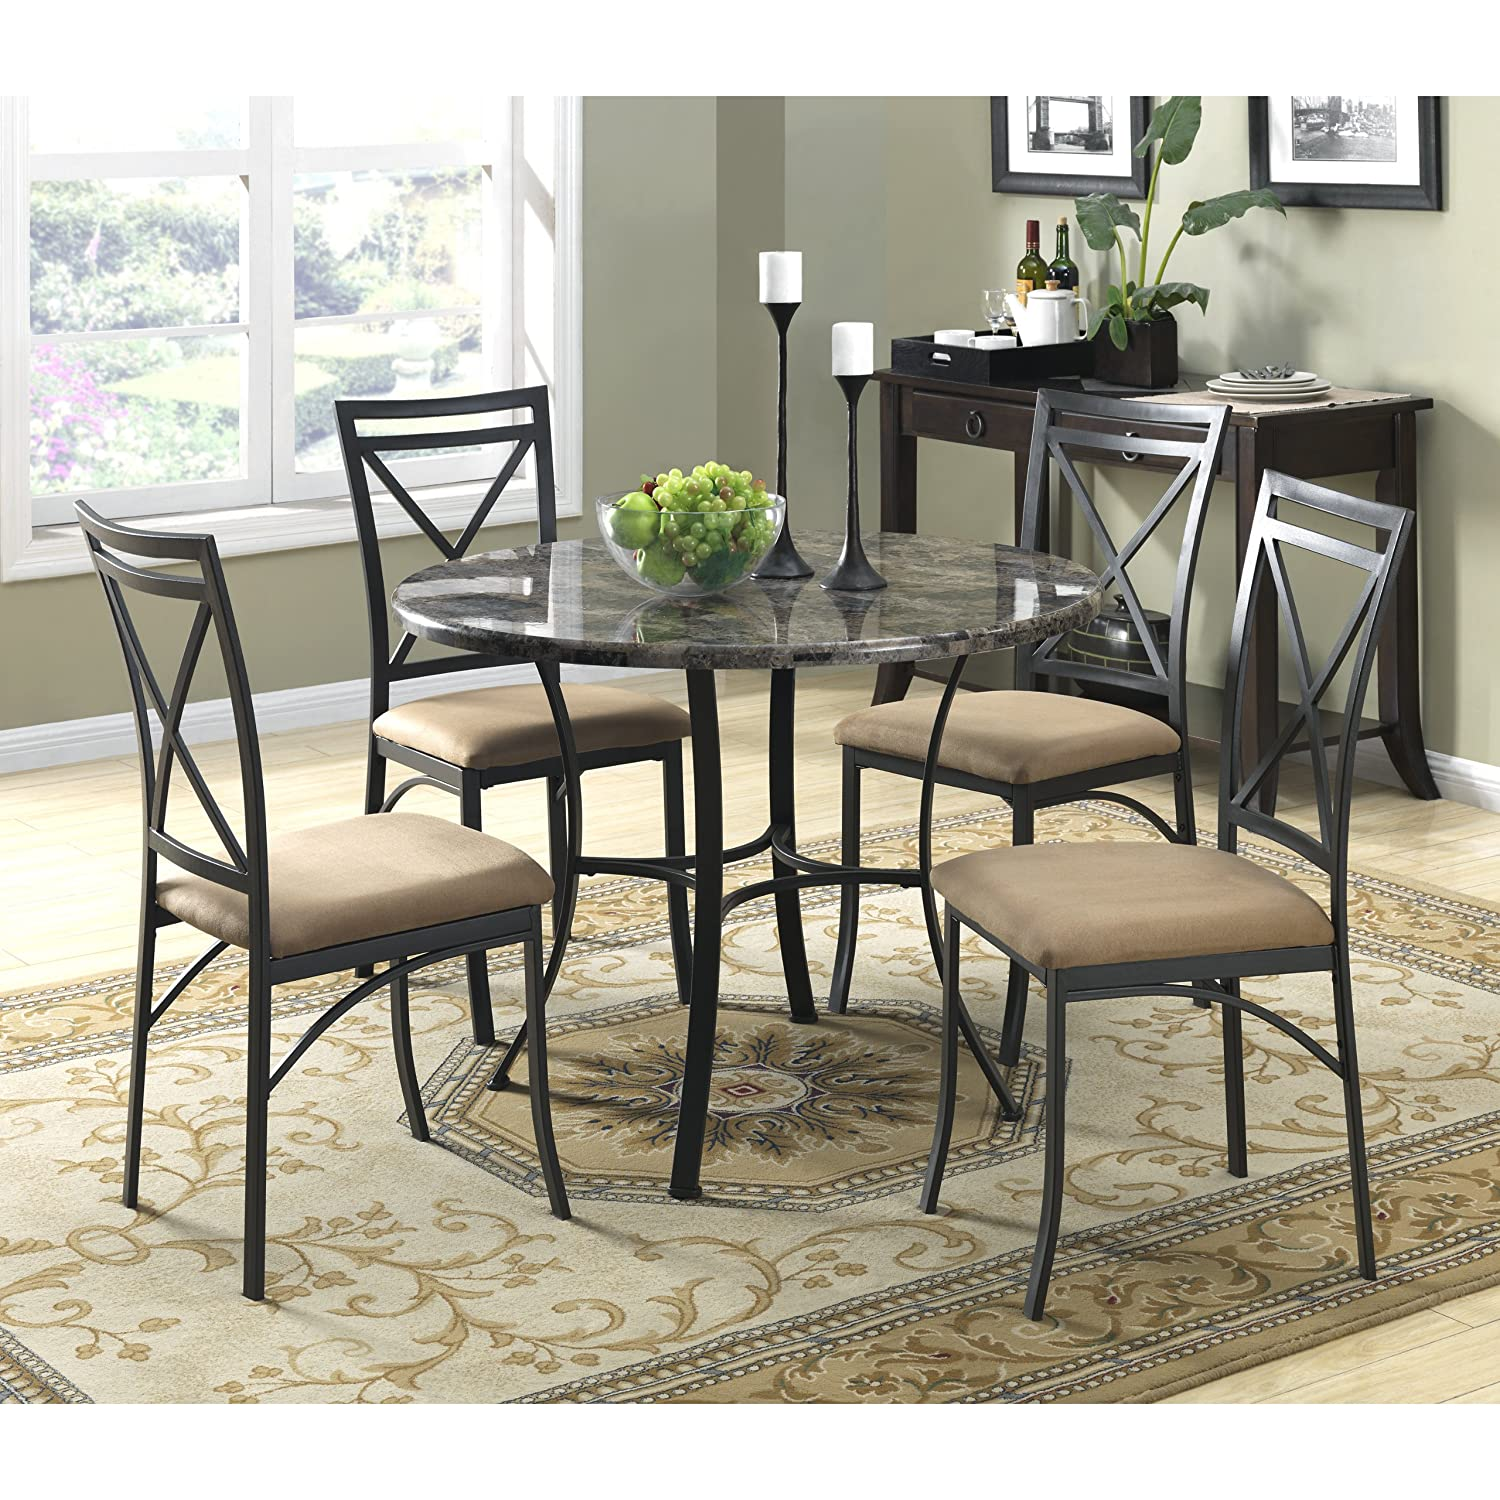 Amazon.com   Dorel Living Faux Marble Top Dining Table Set   Table U0026 Chair  Sets